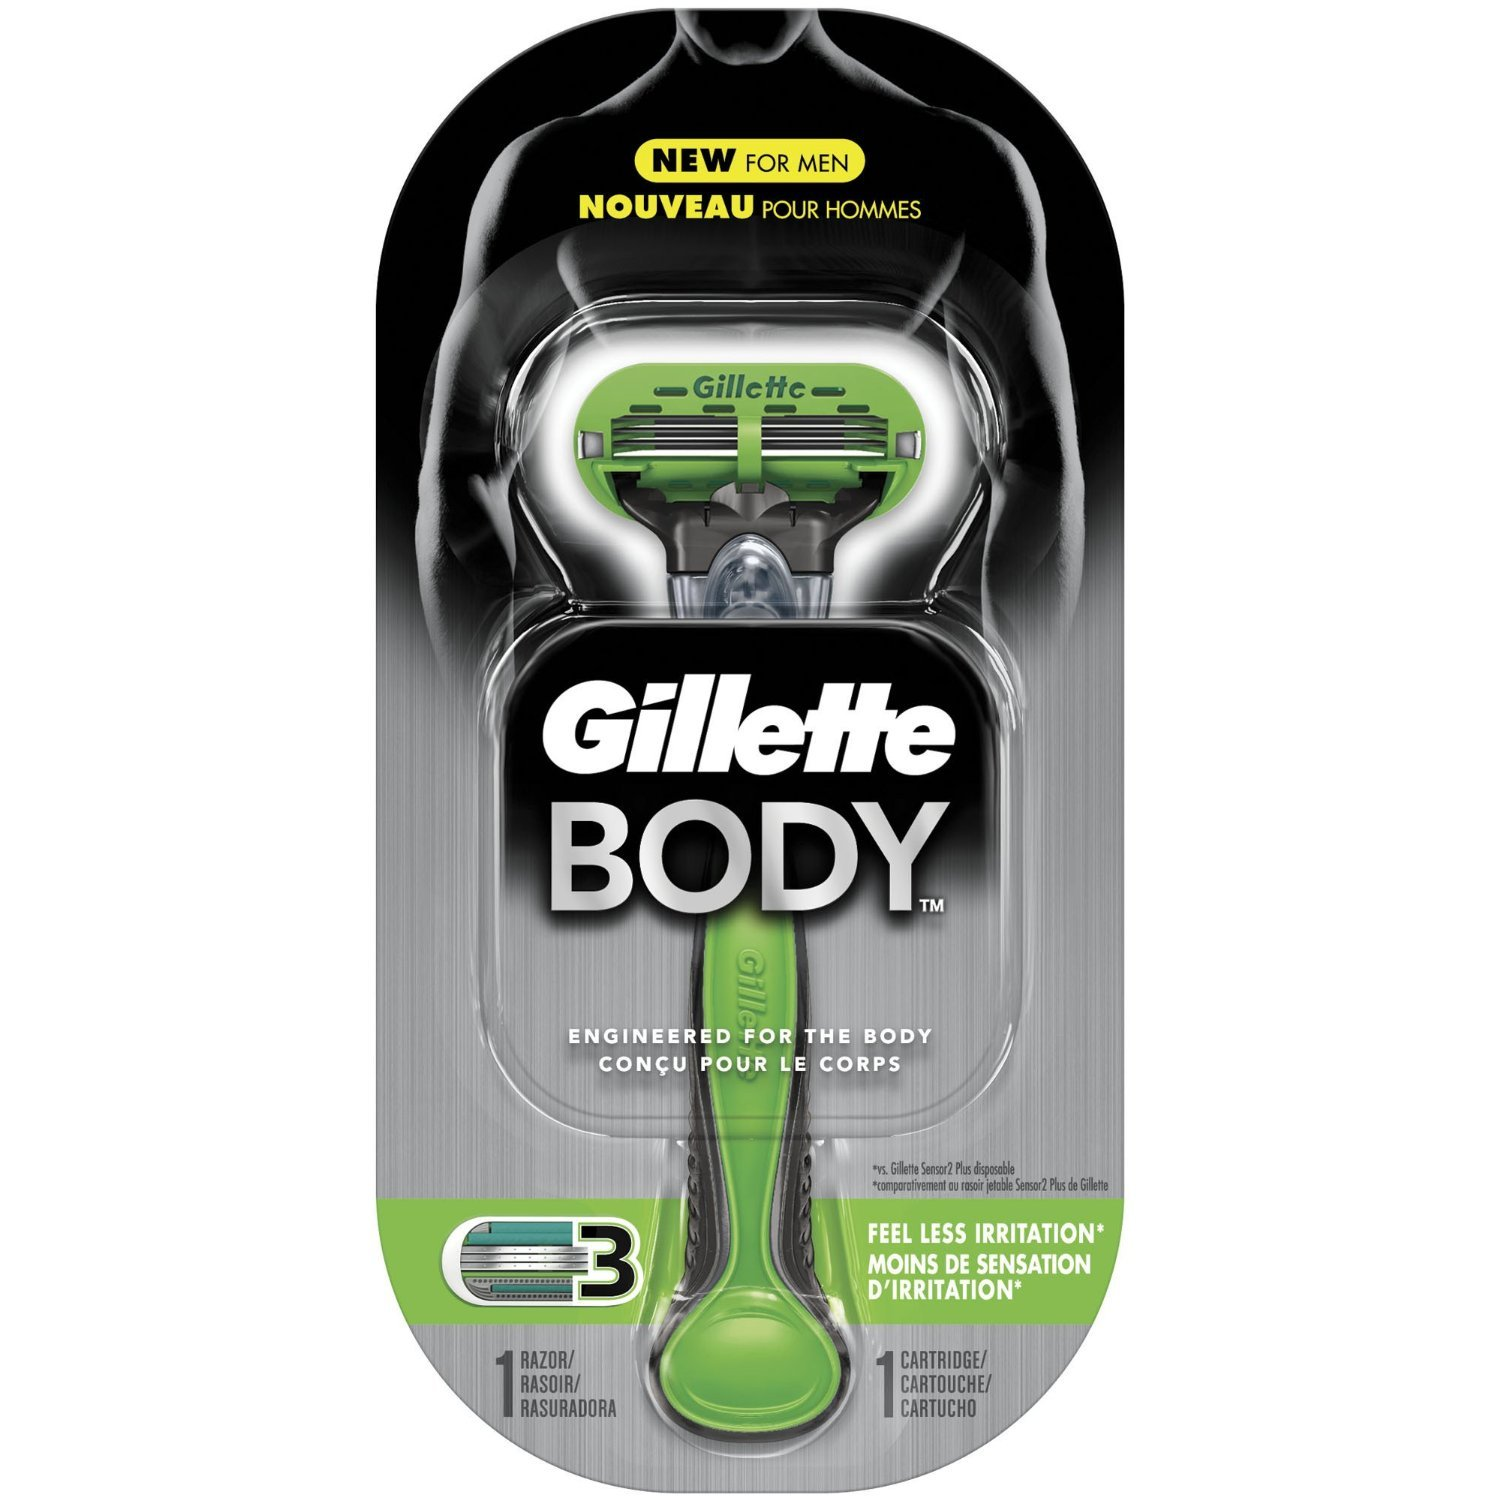 Gillette Body Razor 2 Pack